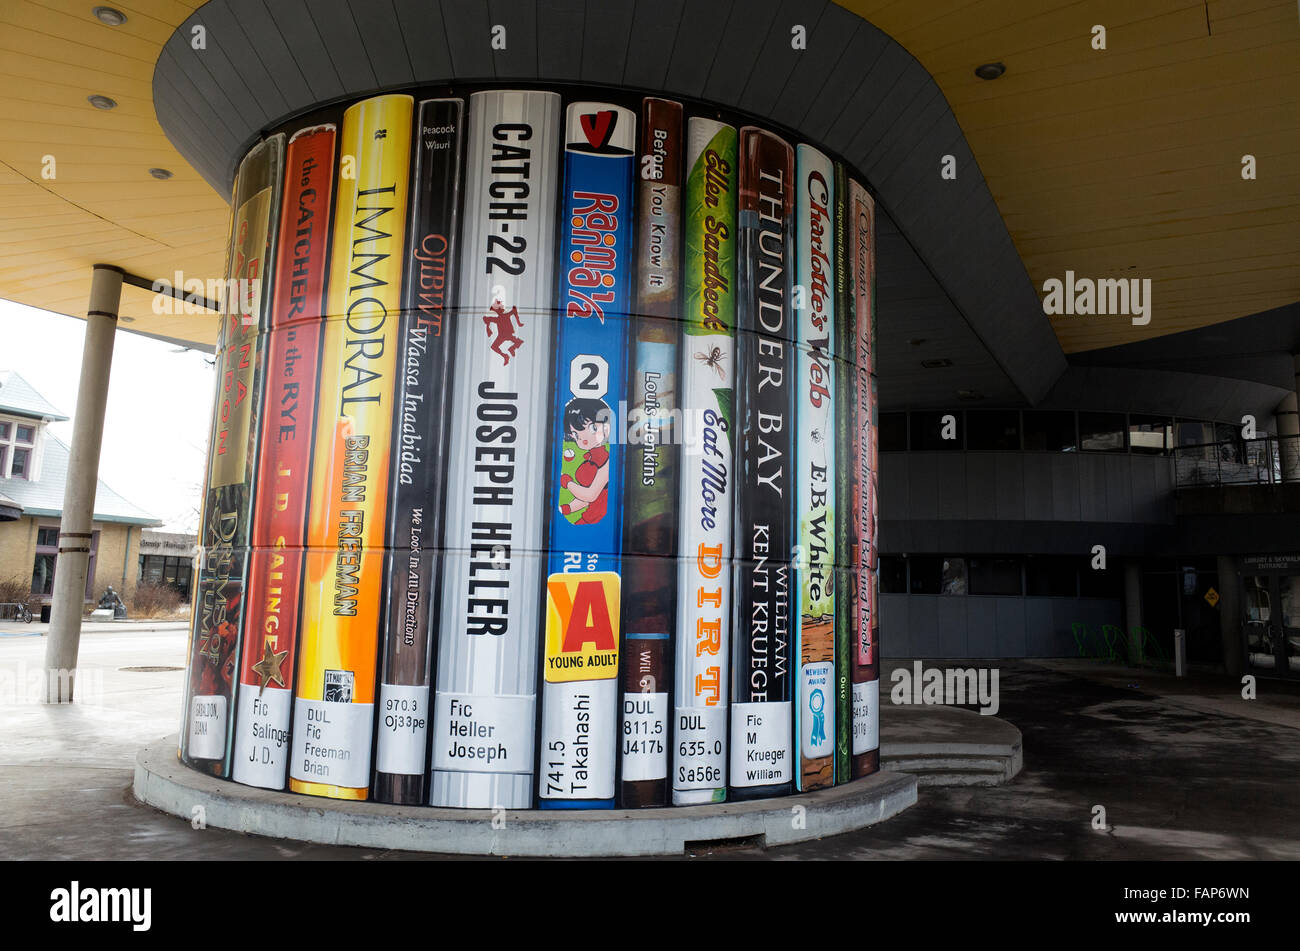 Modern advertisement for the Duluth Public Library displaying lifesize covers of popular books. Duluth Minnesota - Stock Image